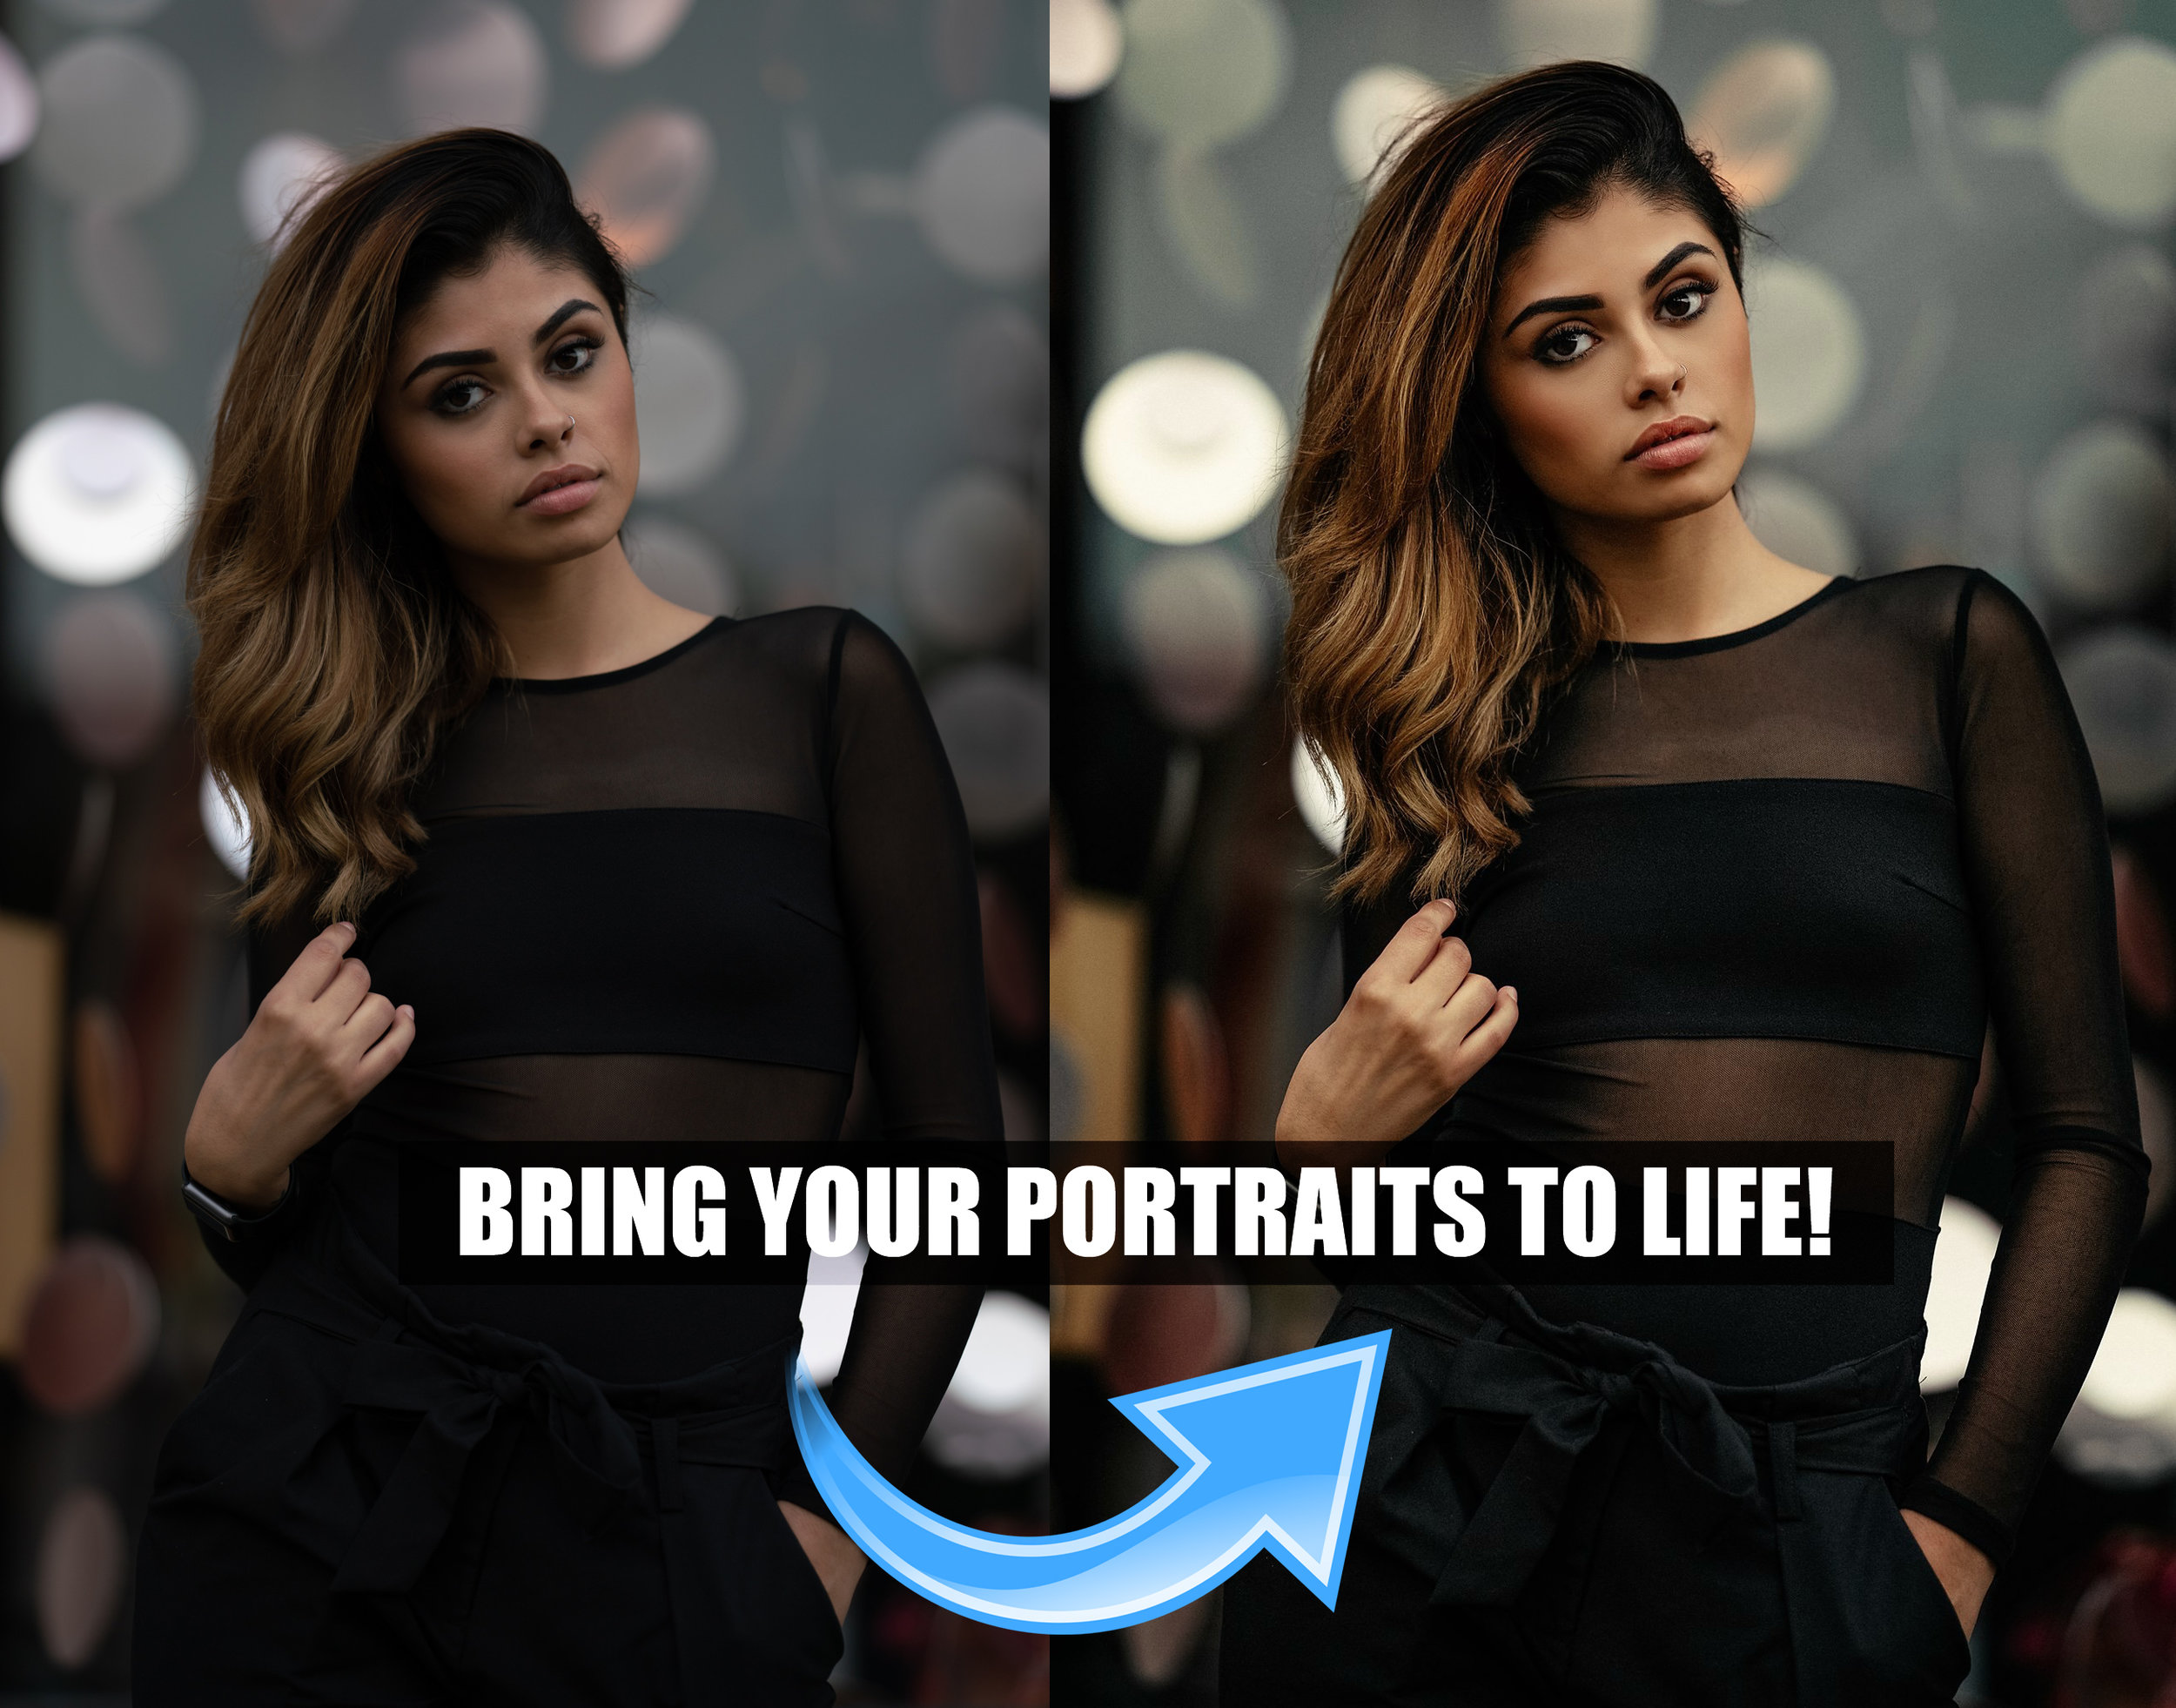 My process is easy to learn and perfect for beginners - or anyone who doesn't have much experience retouching portraits